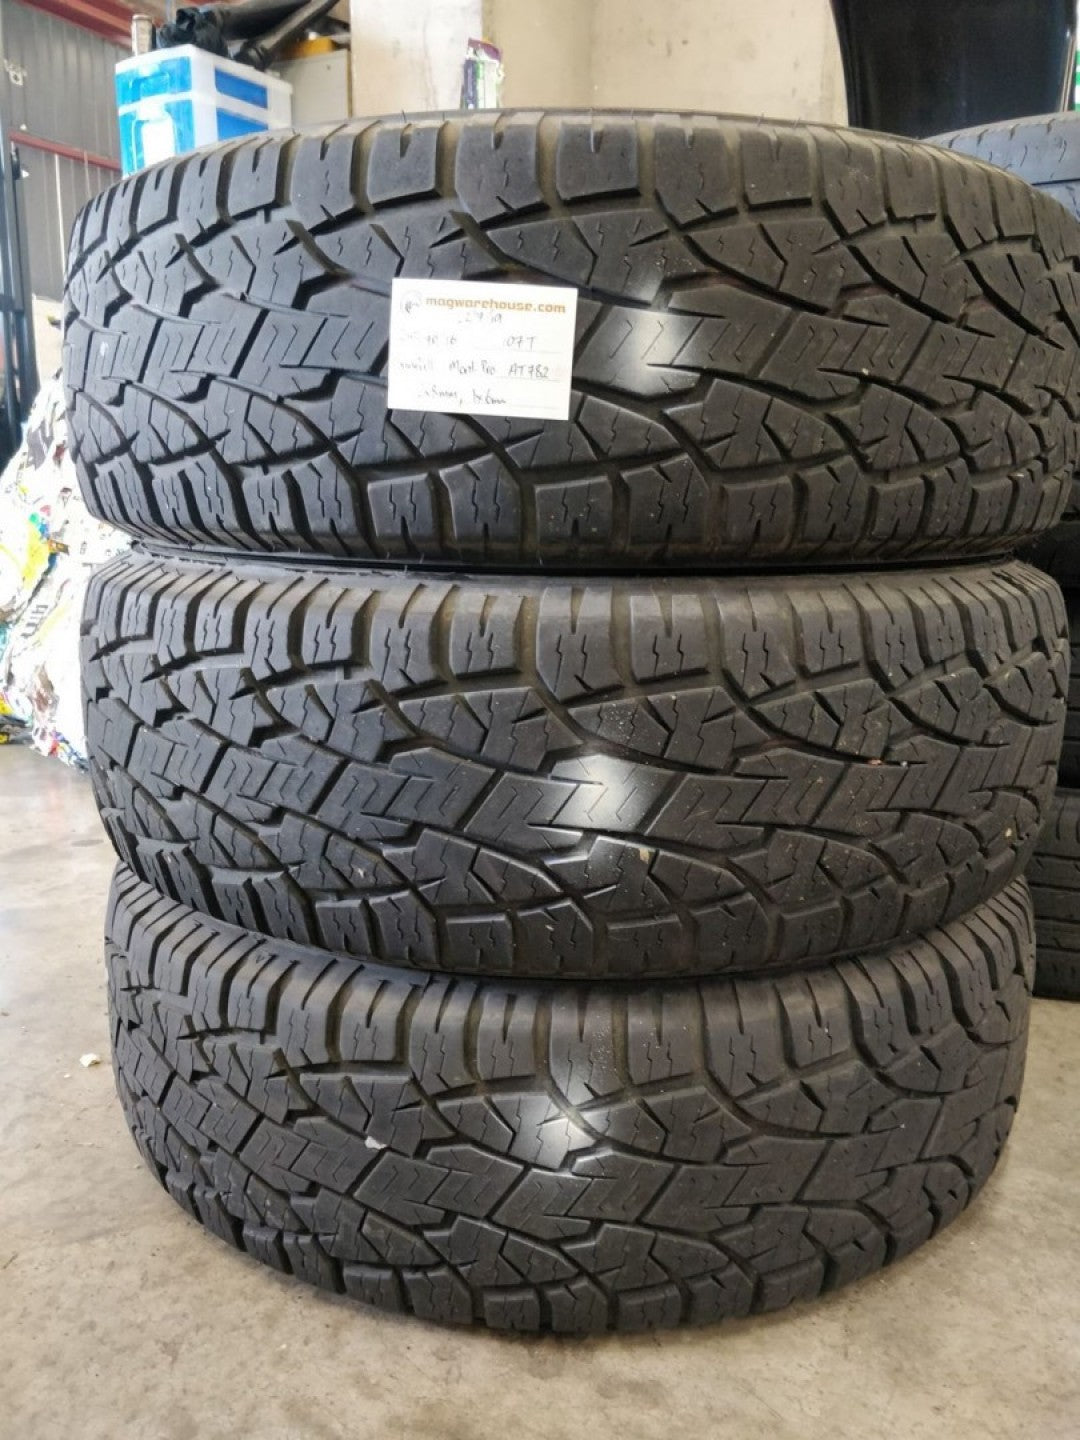 245/70R16 107T Sunfull Mont-Pro AT782 1x6mm, 2x8mm, FREE Fitting with BUYNOW!!!